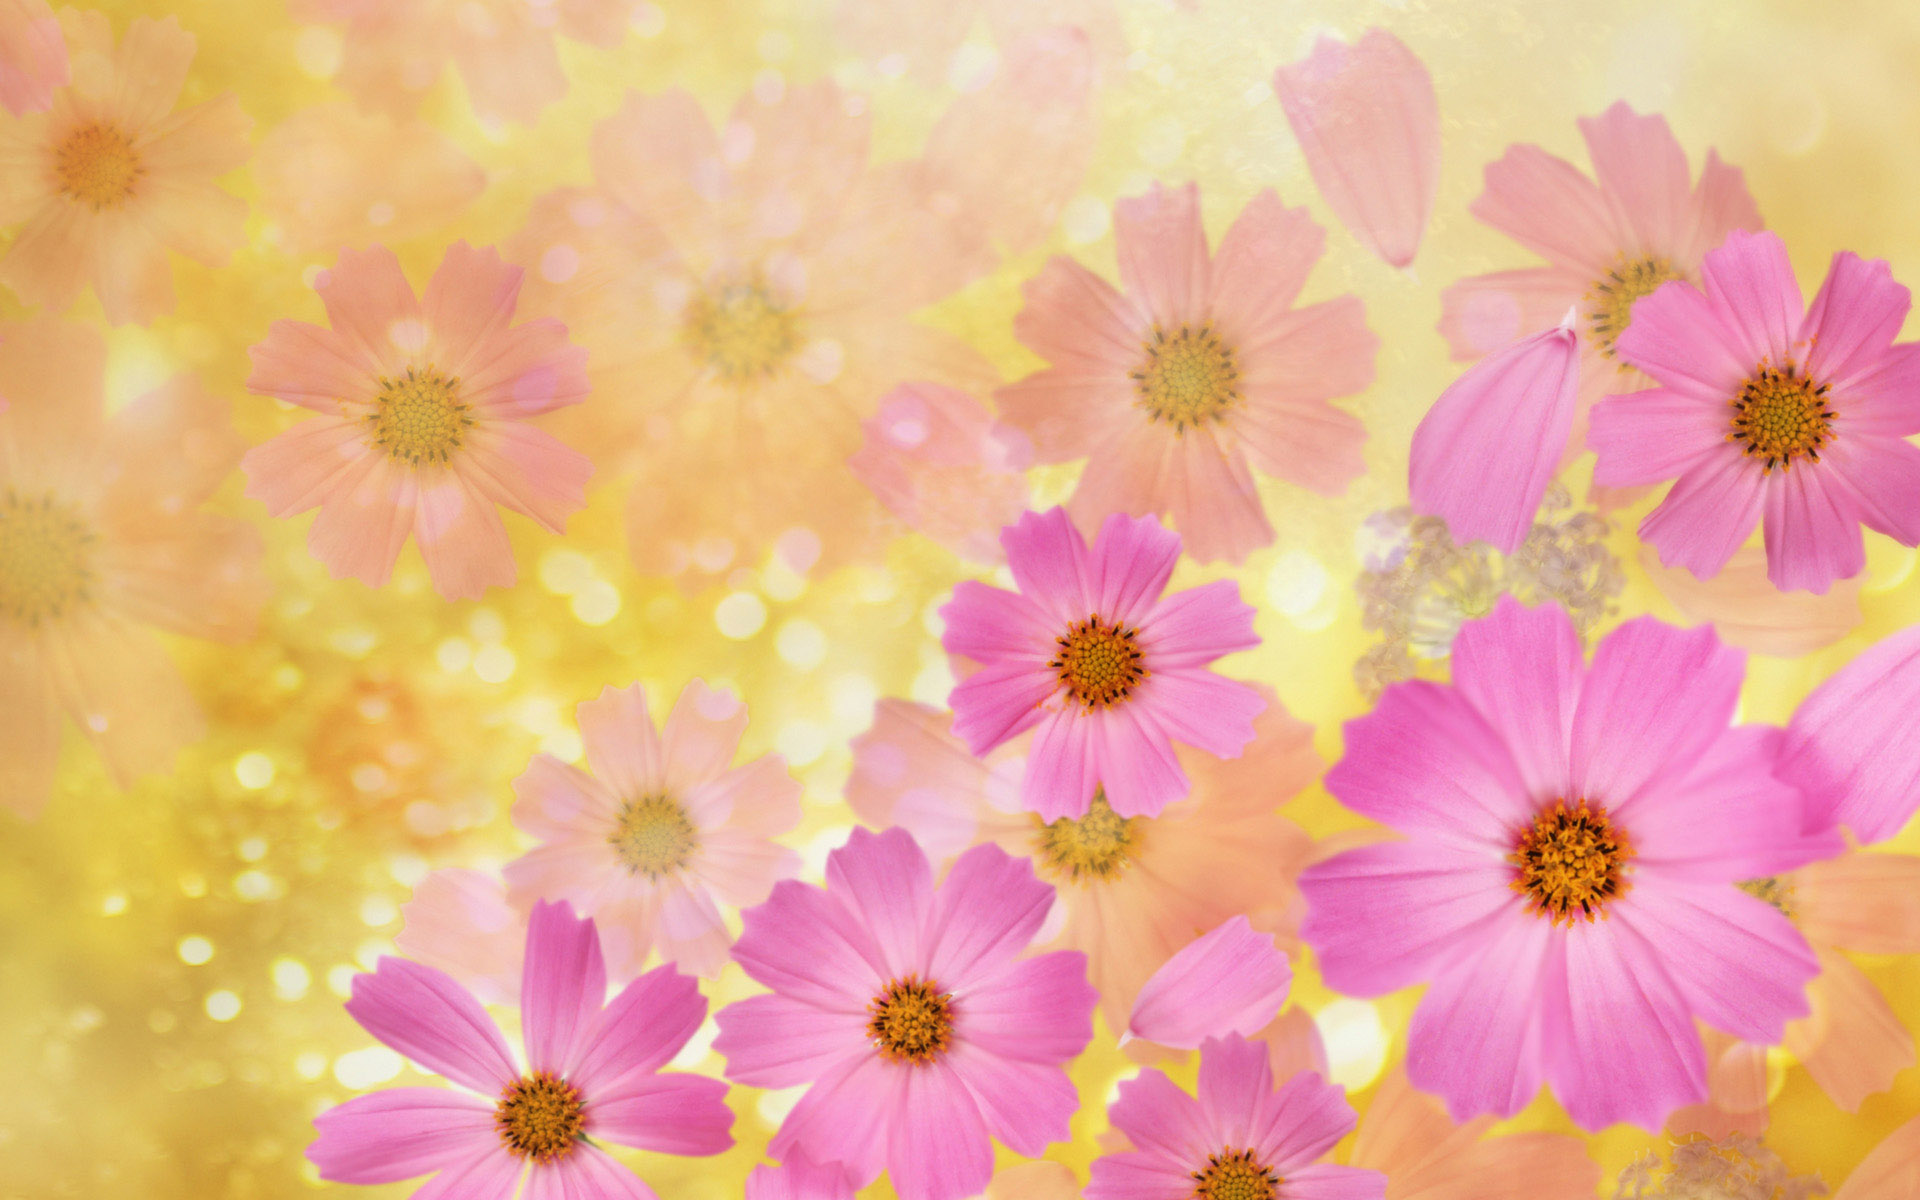 Beautiful Pink Spring Flowers Wallpaper Desktop Background 1920x1200